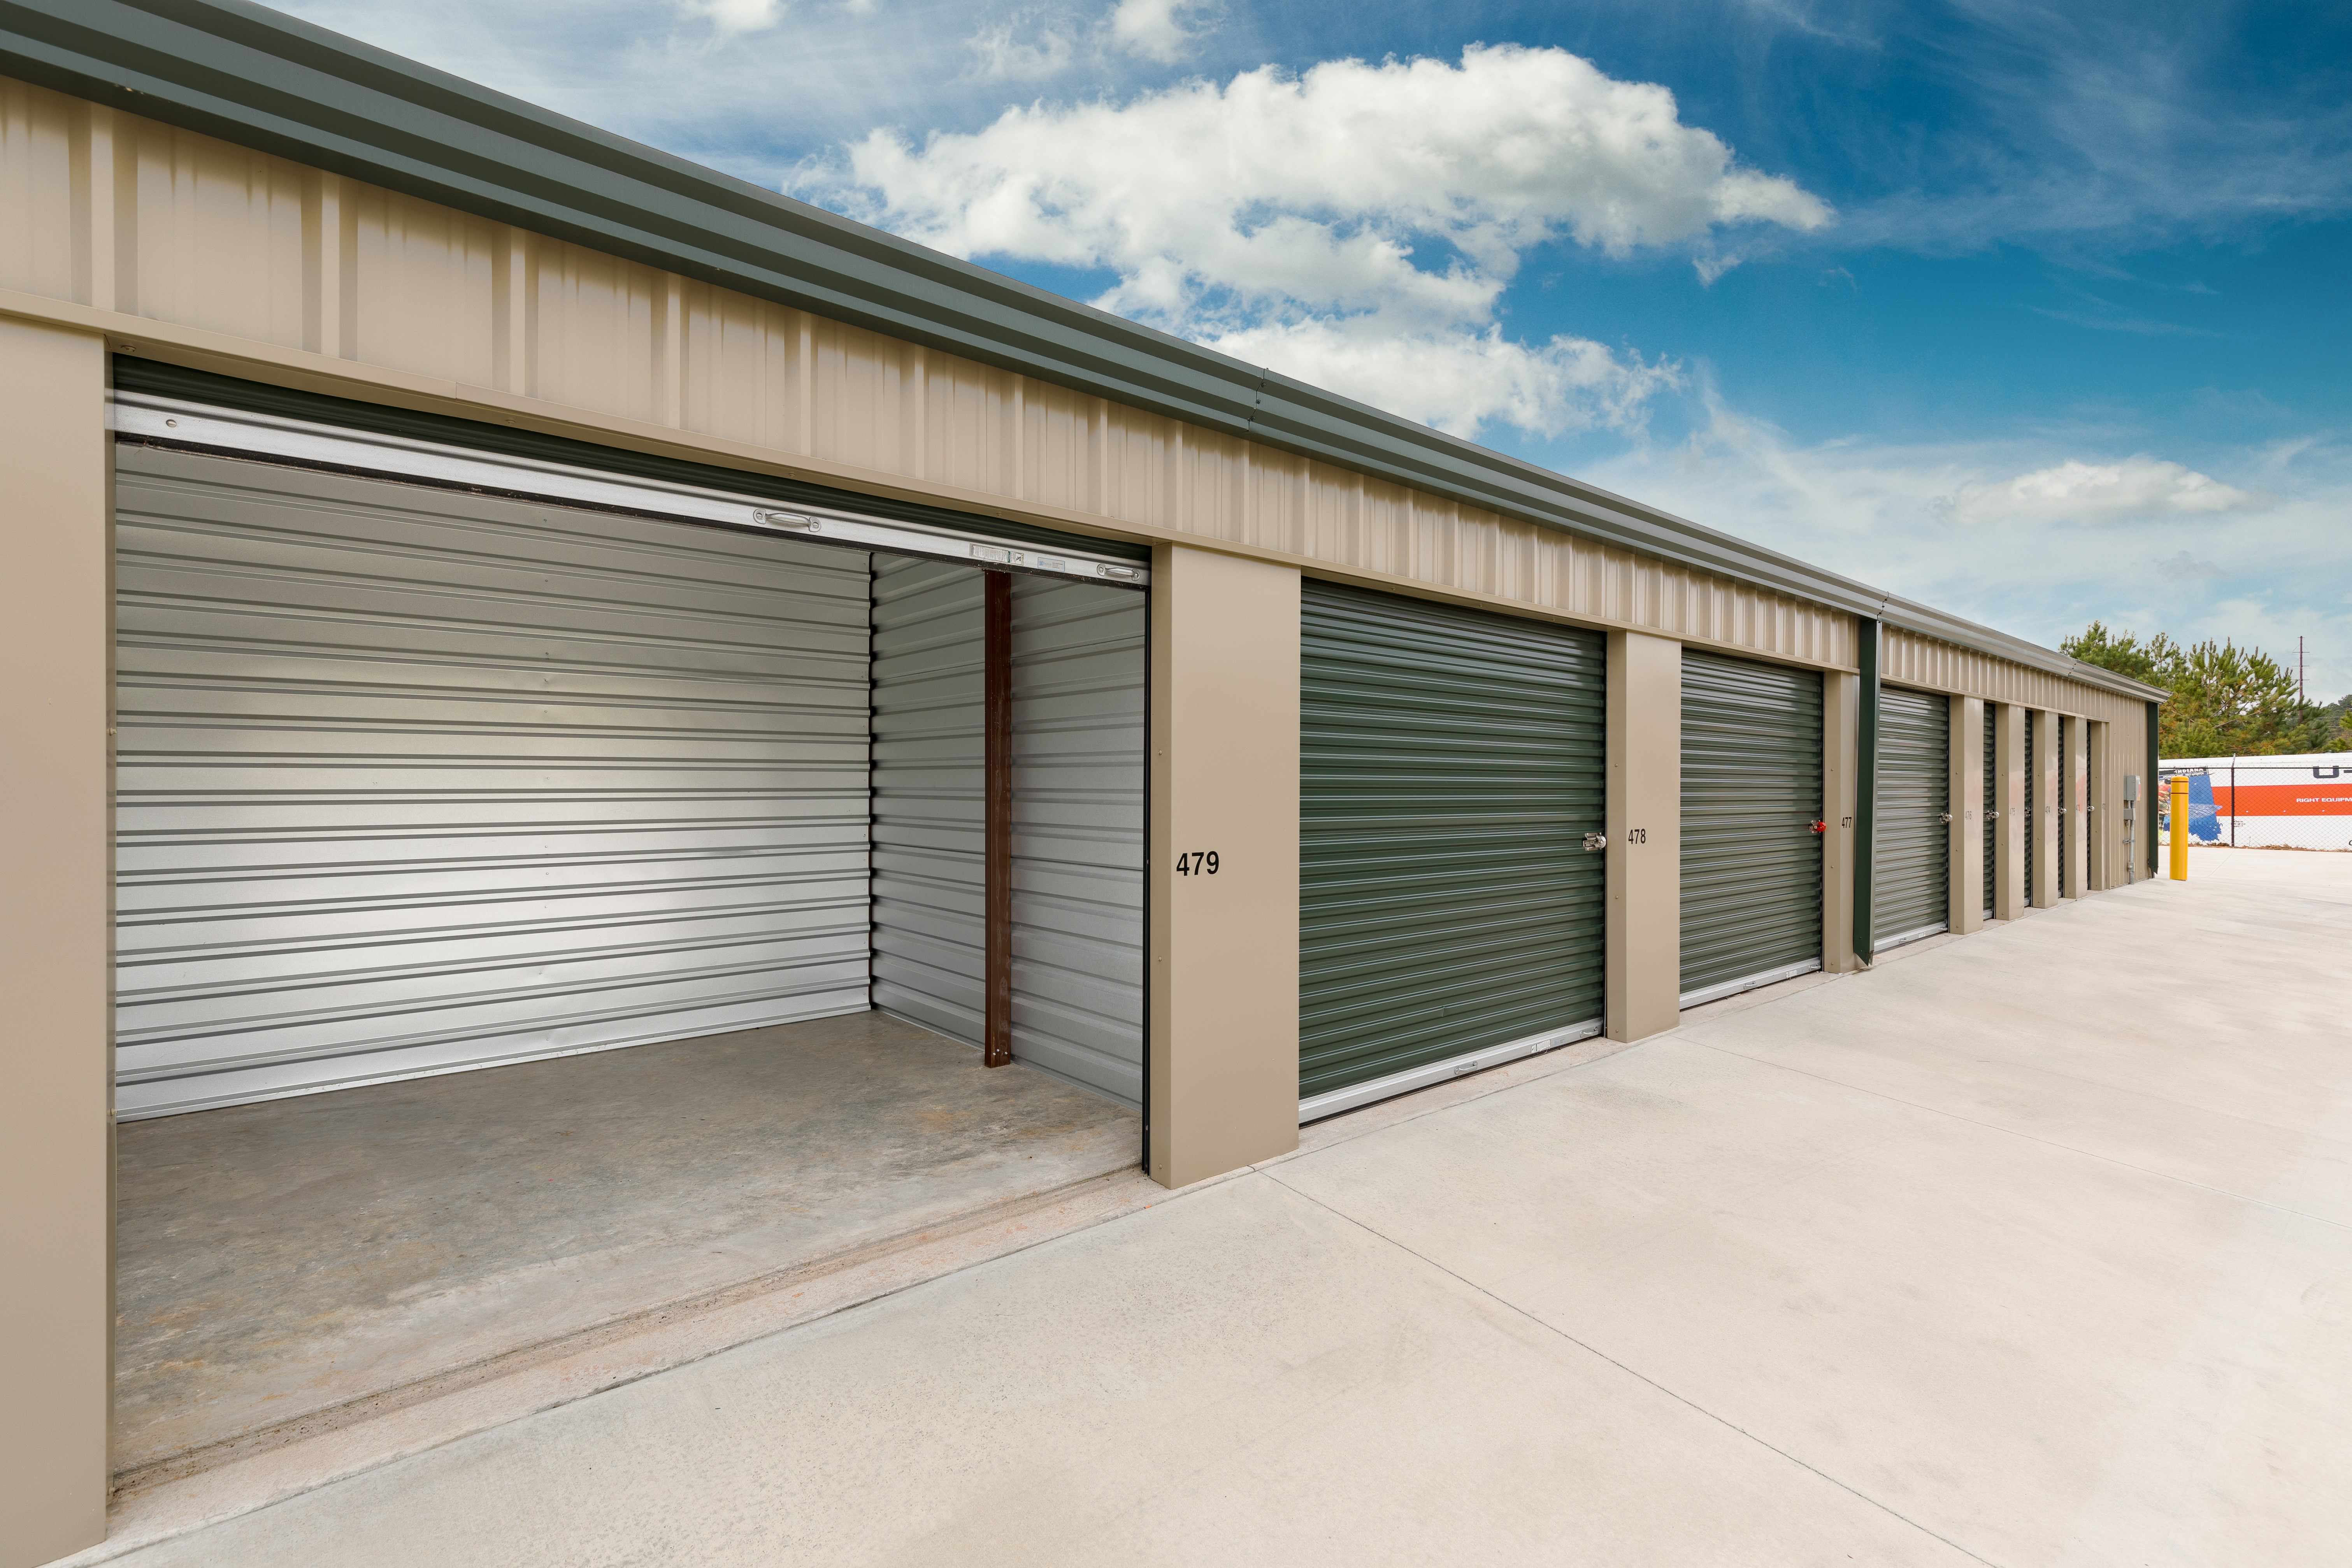 row of storage units, one with roll up door open